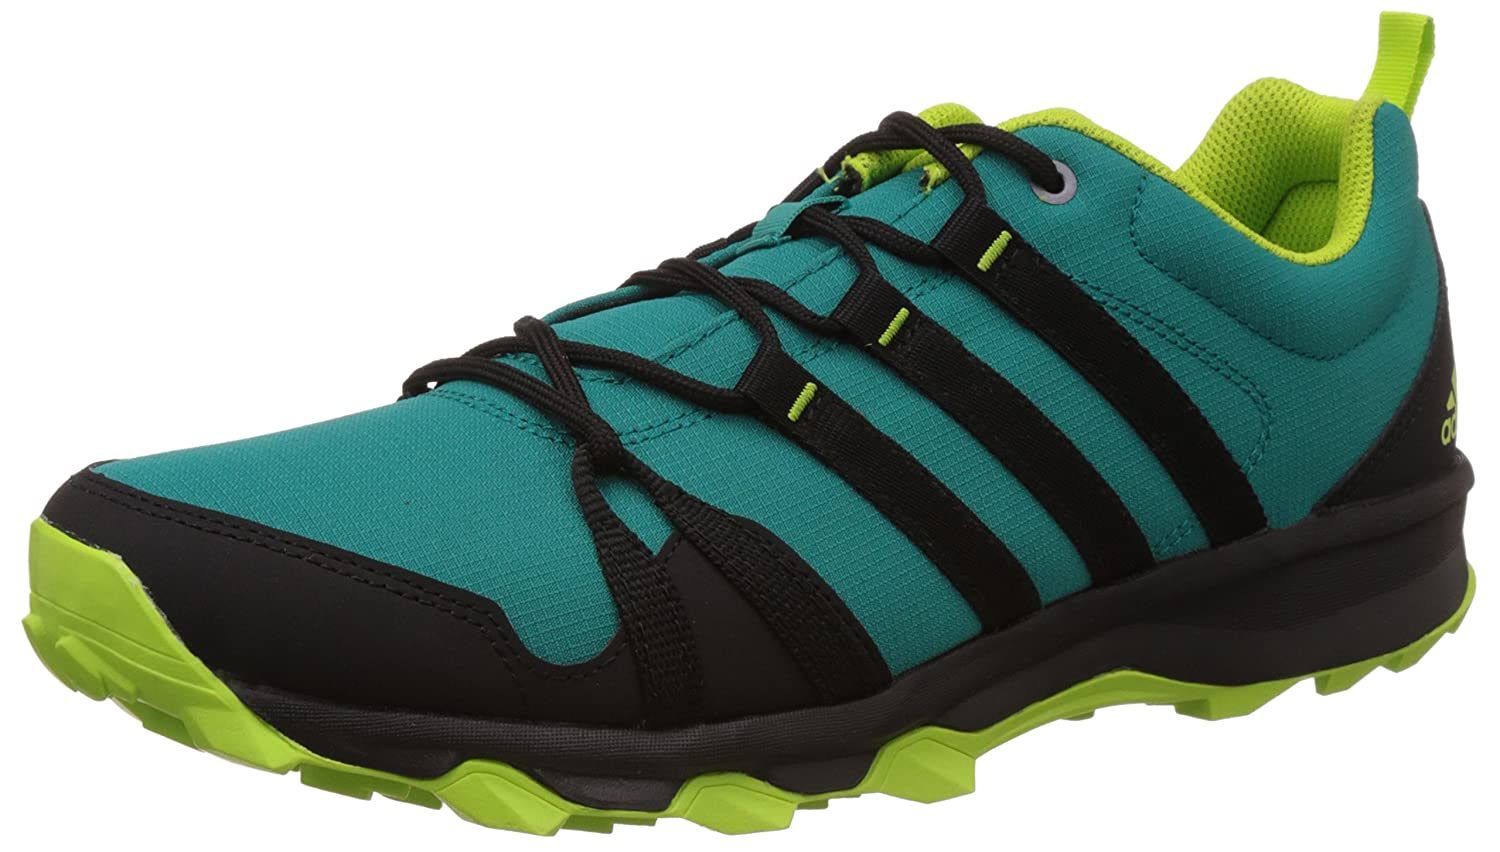 adidas Men\u0027s Trail Rocker Fitness Shoes, Black: Amazon.co.uk: Shoes \u0026 Bags